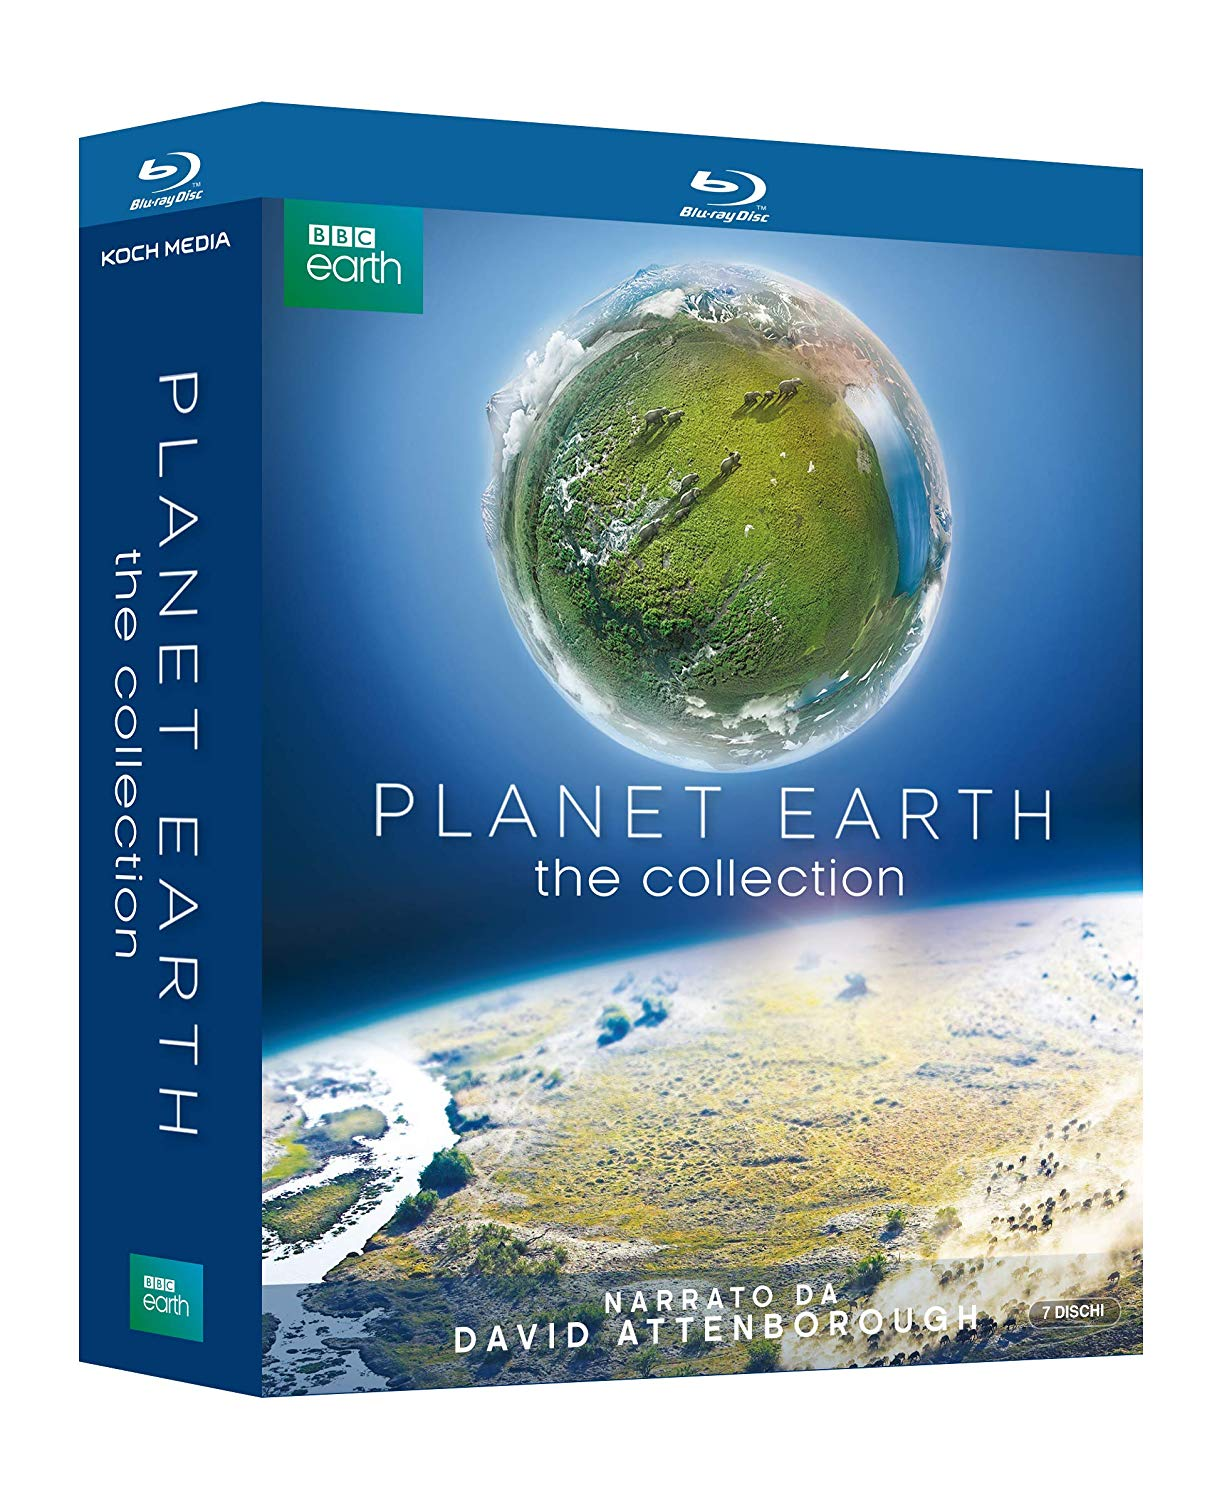 COF.PLANET EARTH 1+2 (7 BLU-RAY)